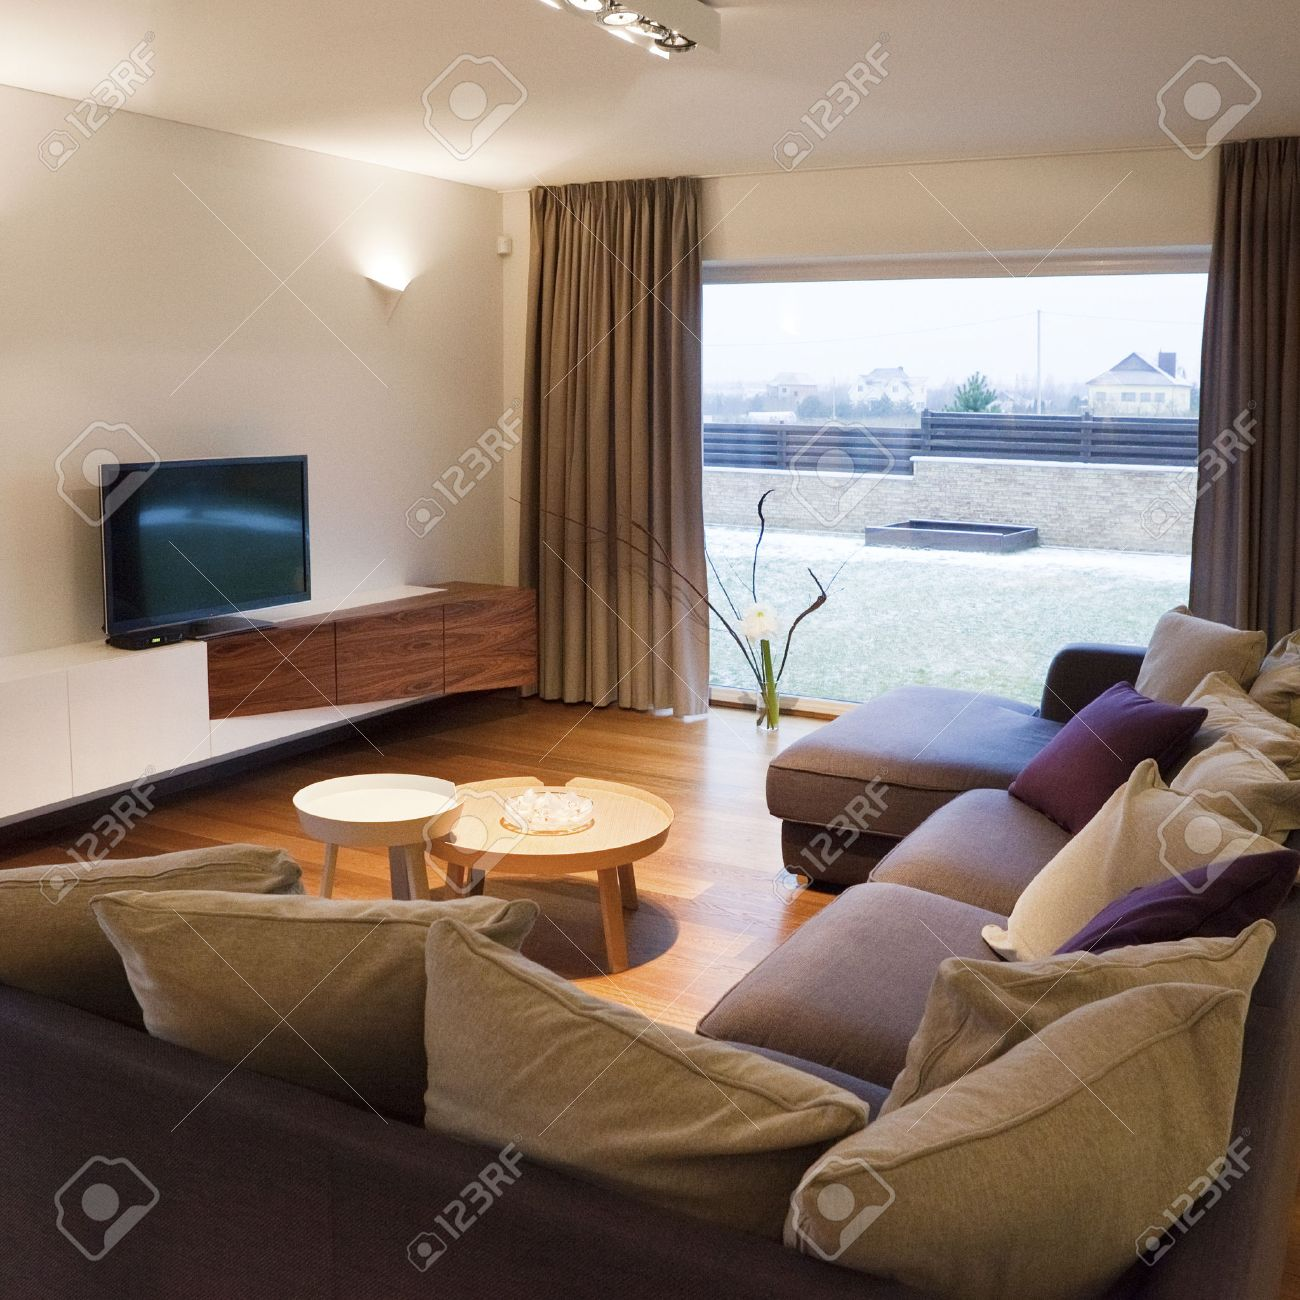 interior design  cozy living room with tv set and large window, Living room